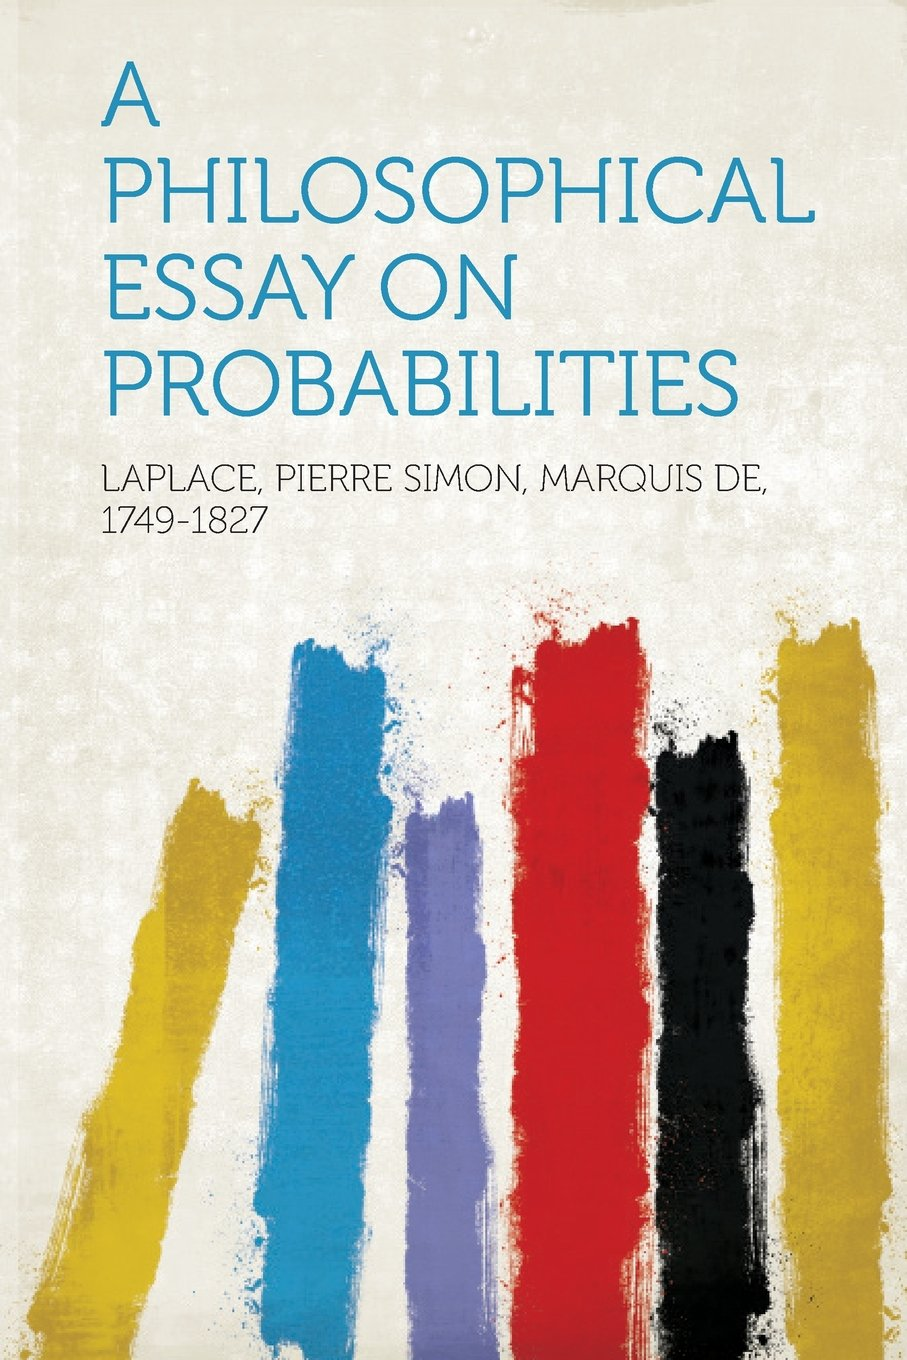 philosophical essay on probabilities  a philosophical essay on probabilities laplace pierre simon